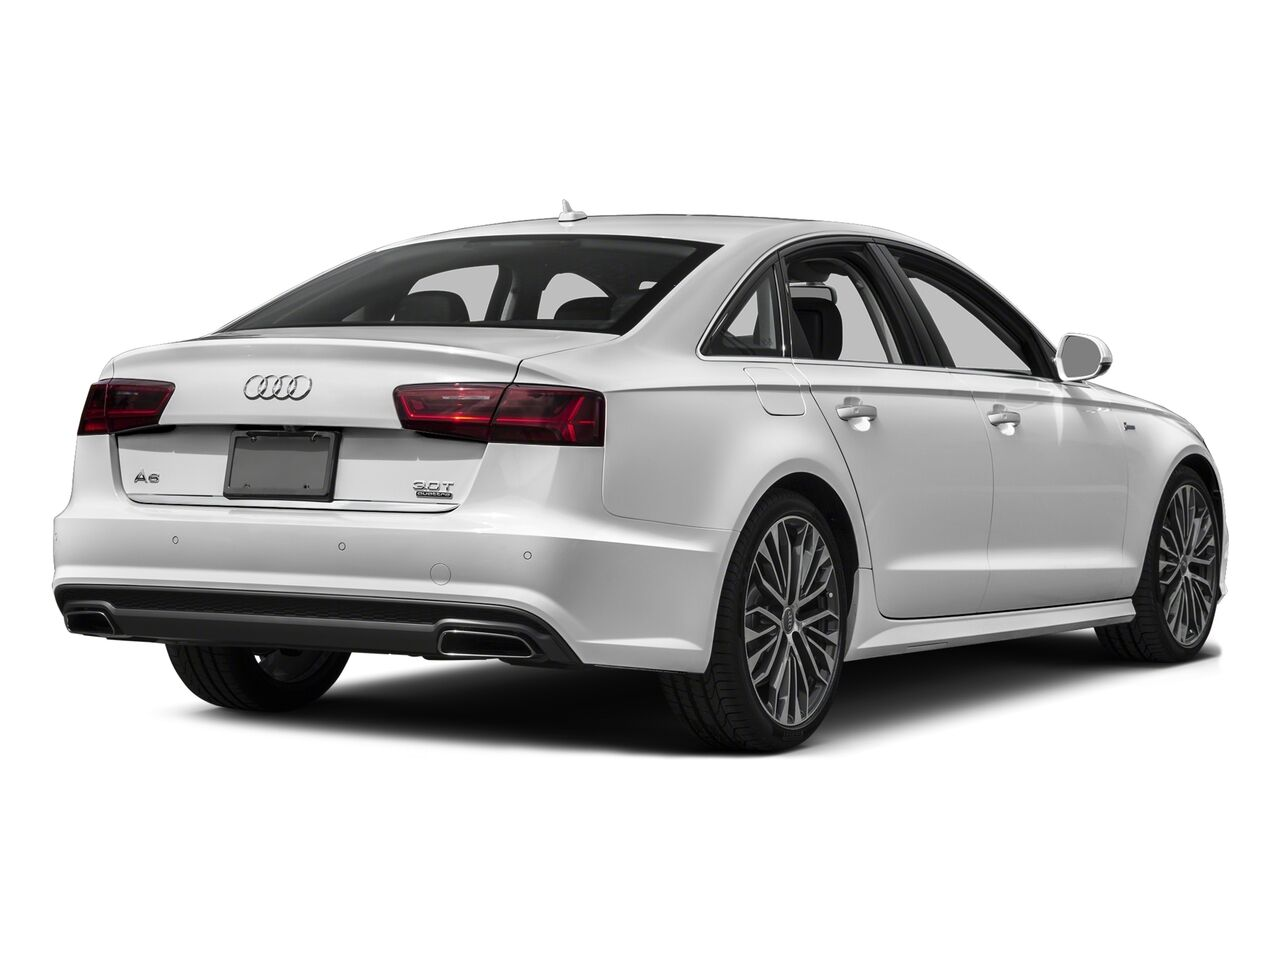 2017 Audi A6 2.0T Premium Plus quattro Chantilly VA